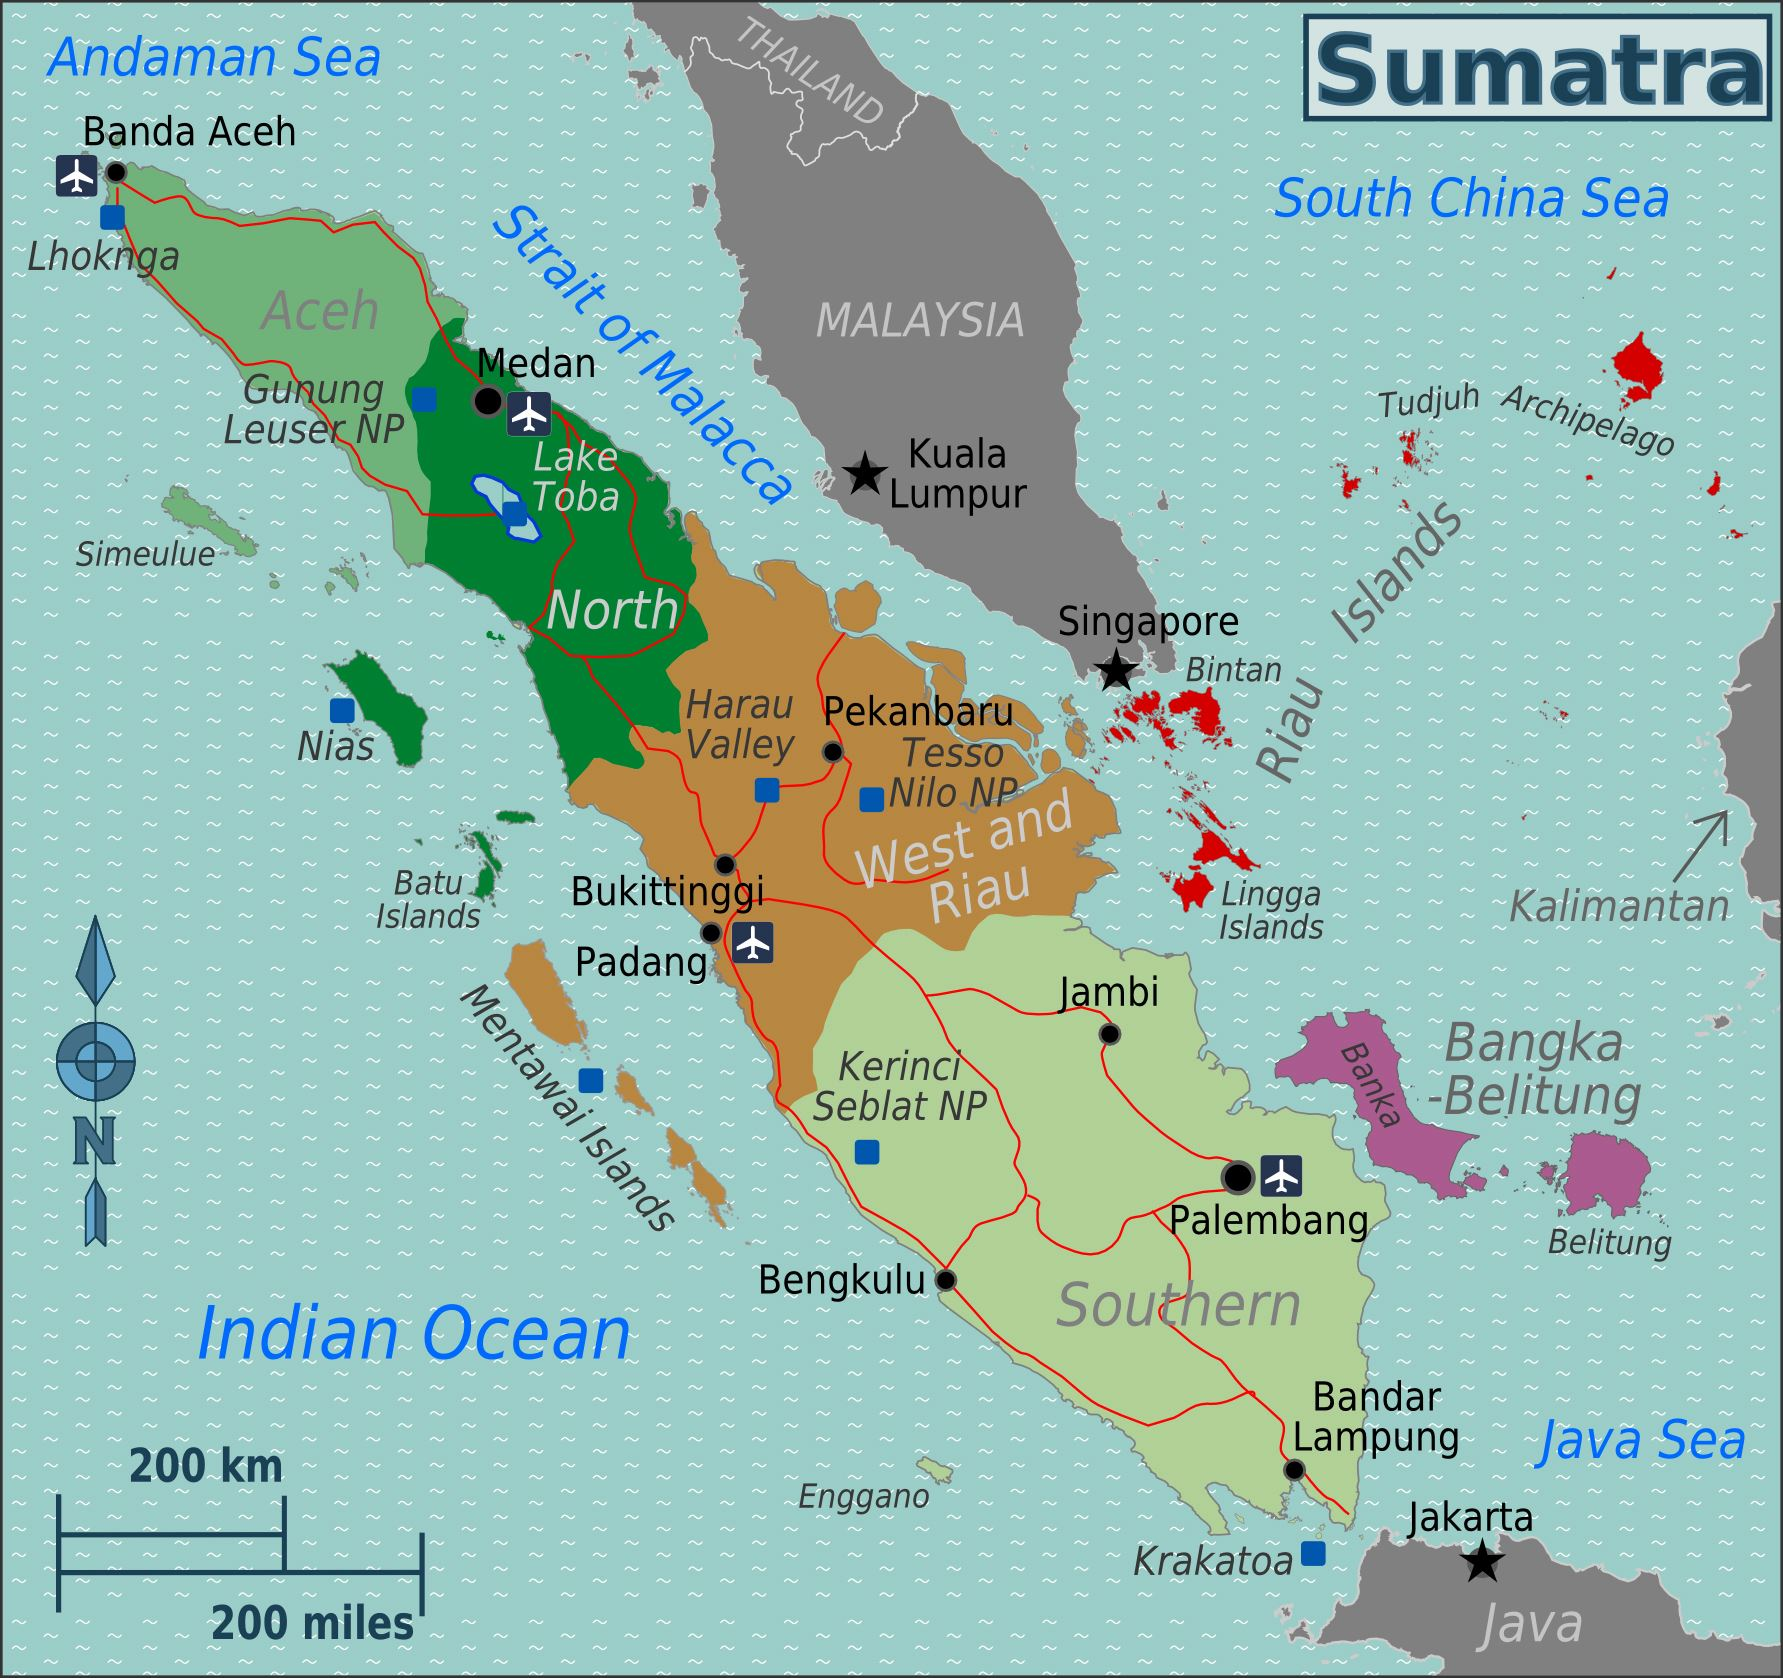 Large Sumatra Maps For Free Download And Print High Resolution And Detailed Maps